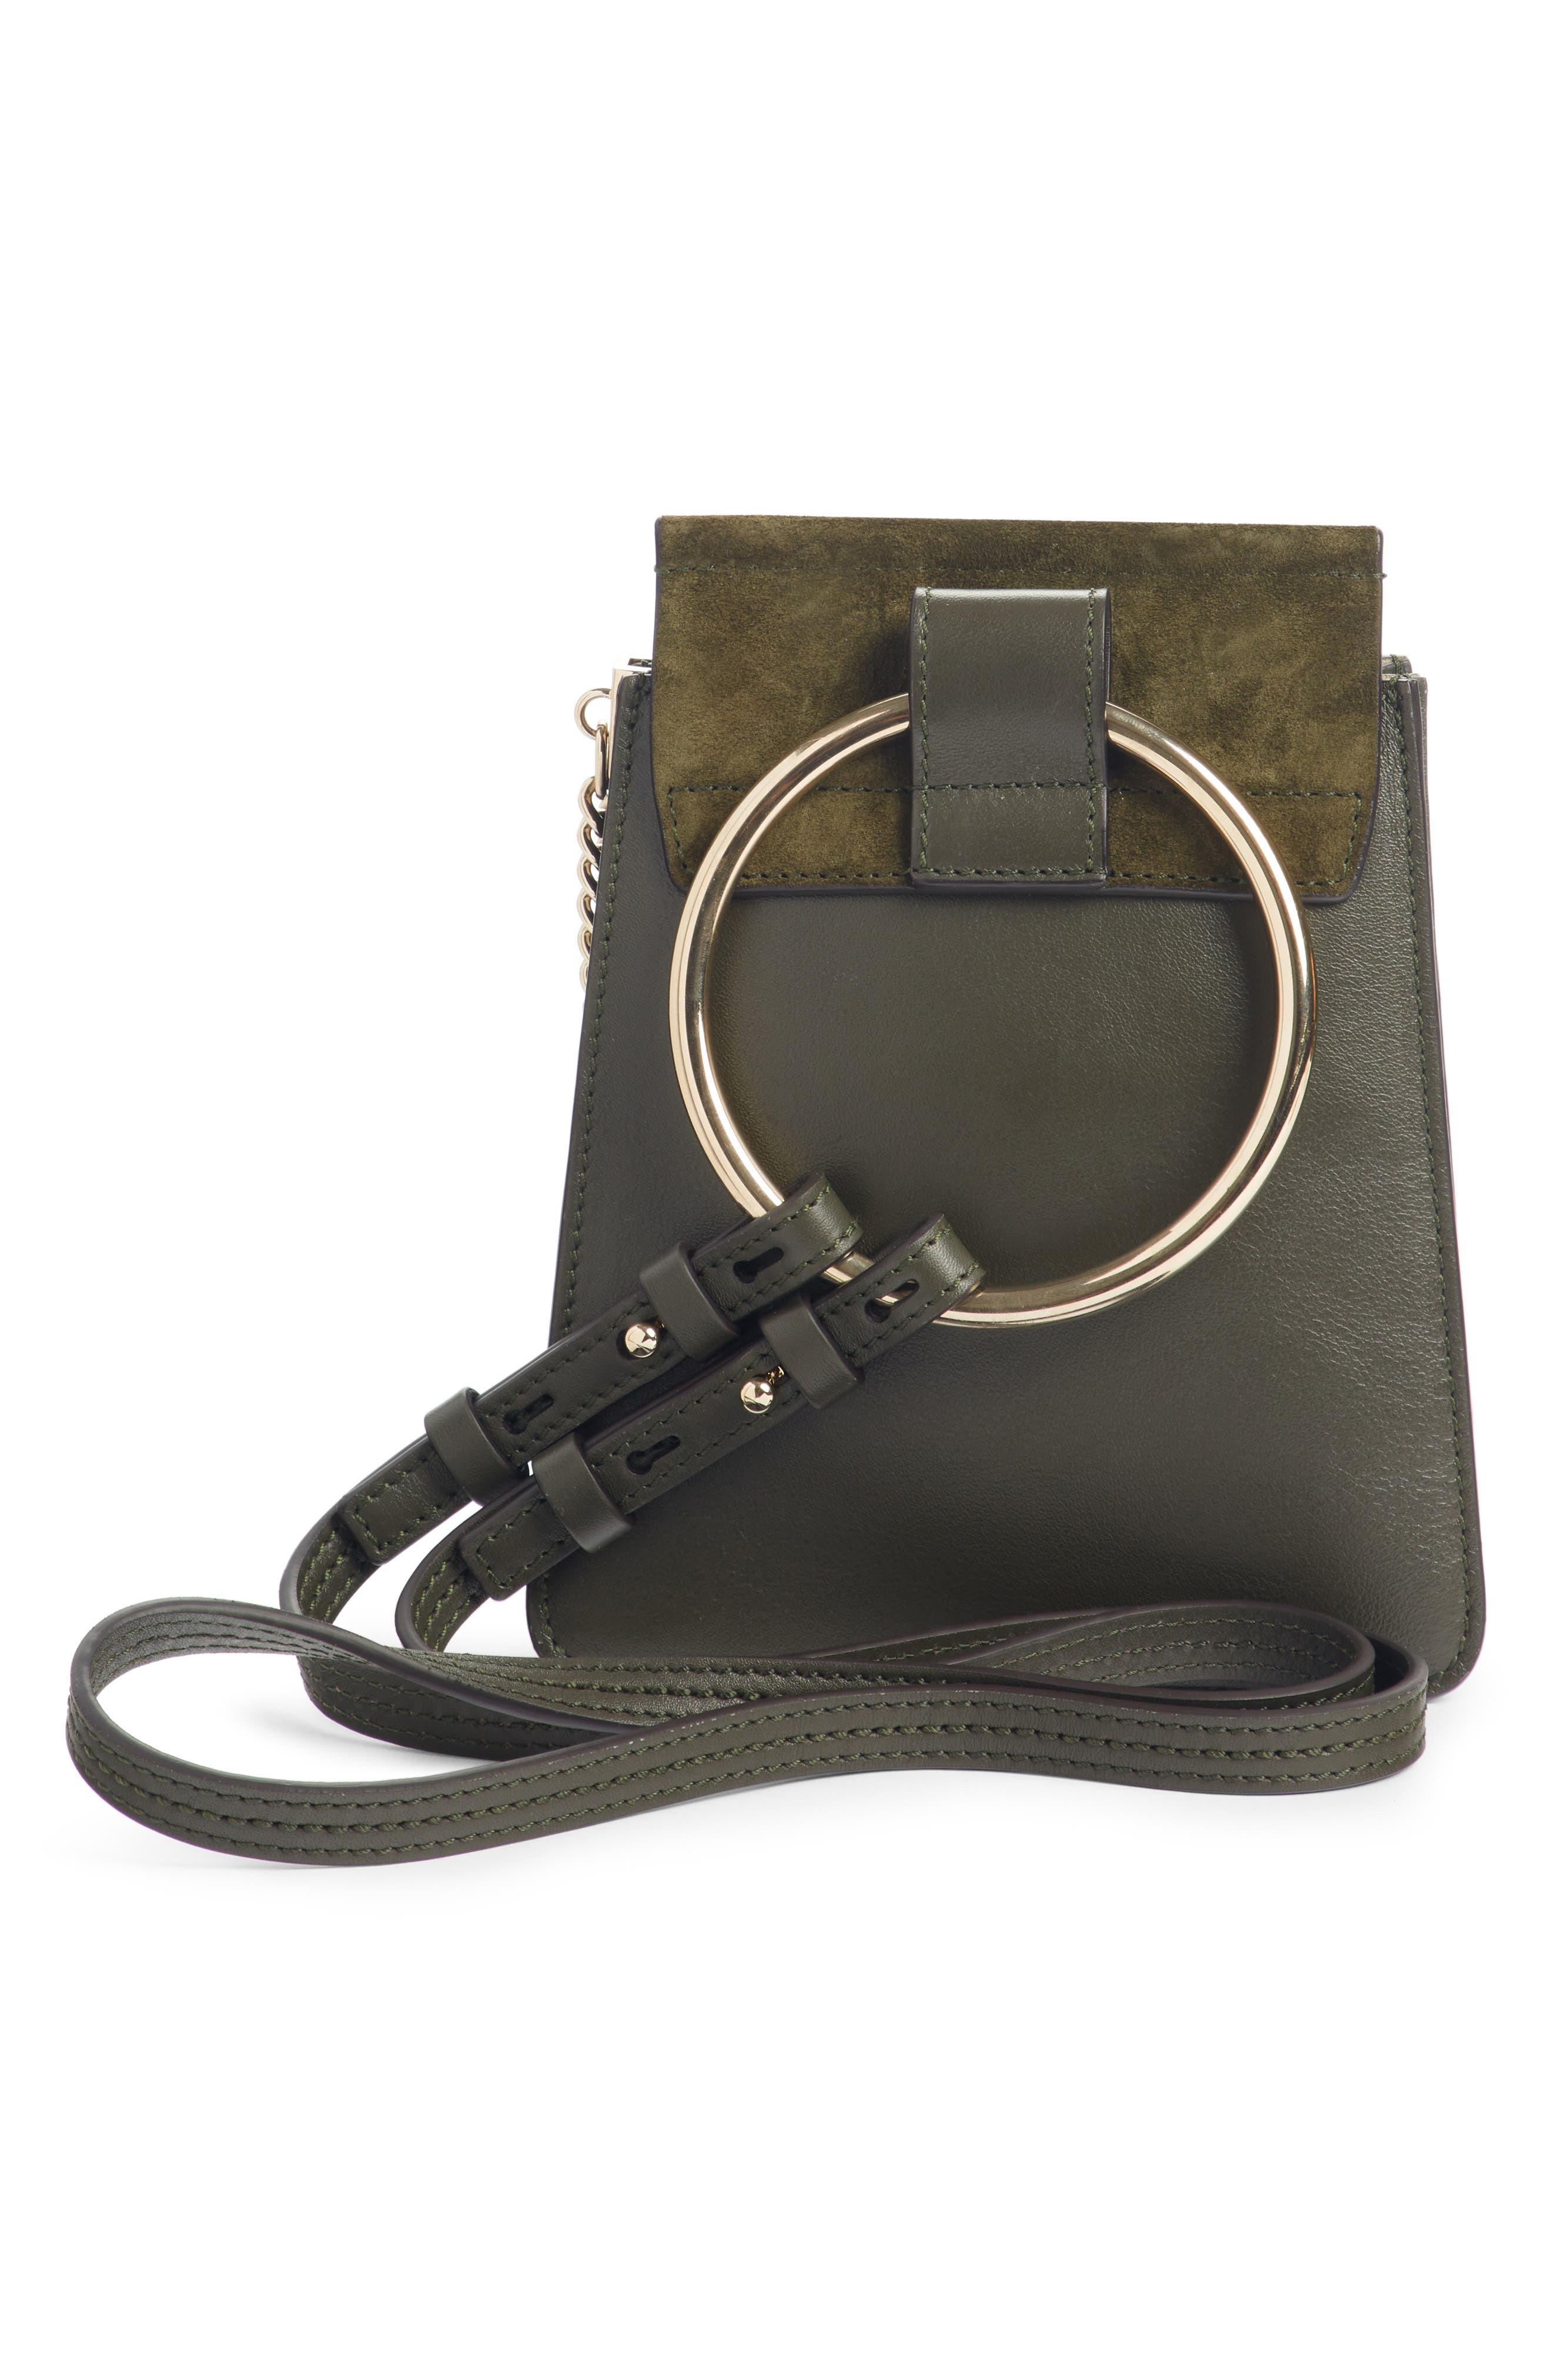 Faye Small Suede & Leather Bracelet Bag,                             Alternate thumbnail 3, color,                             301